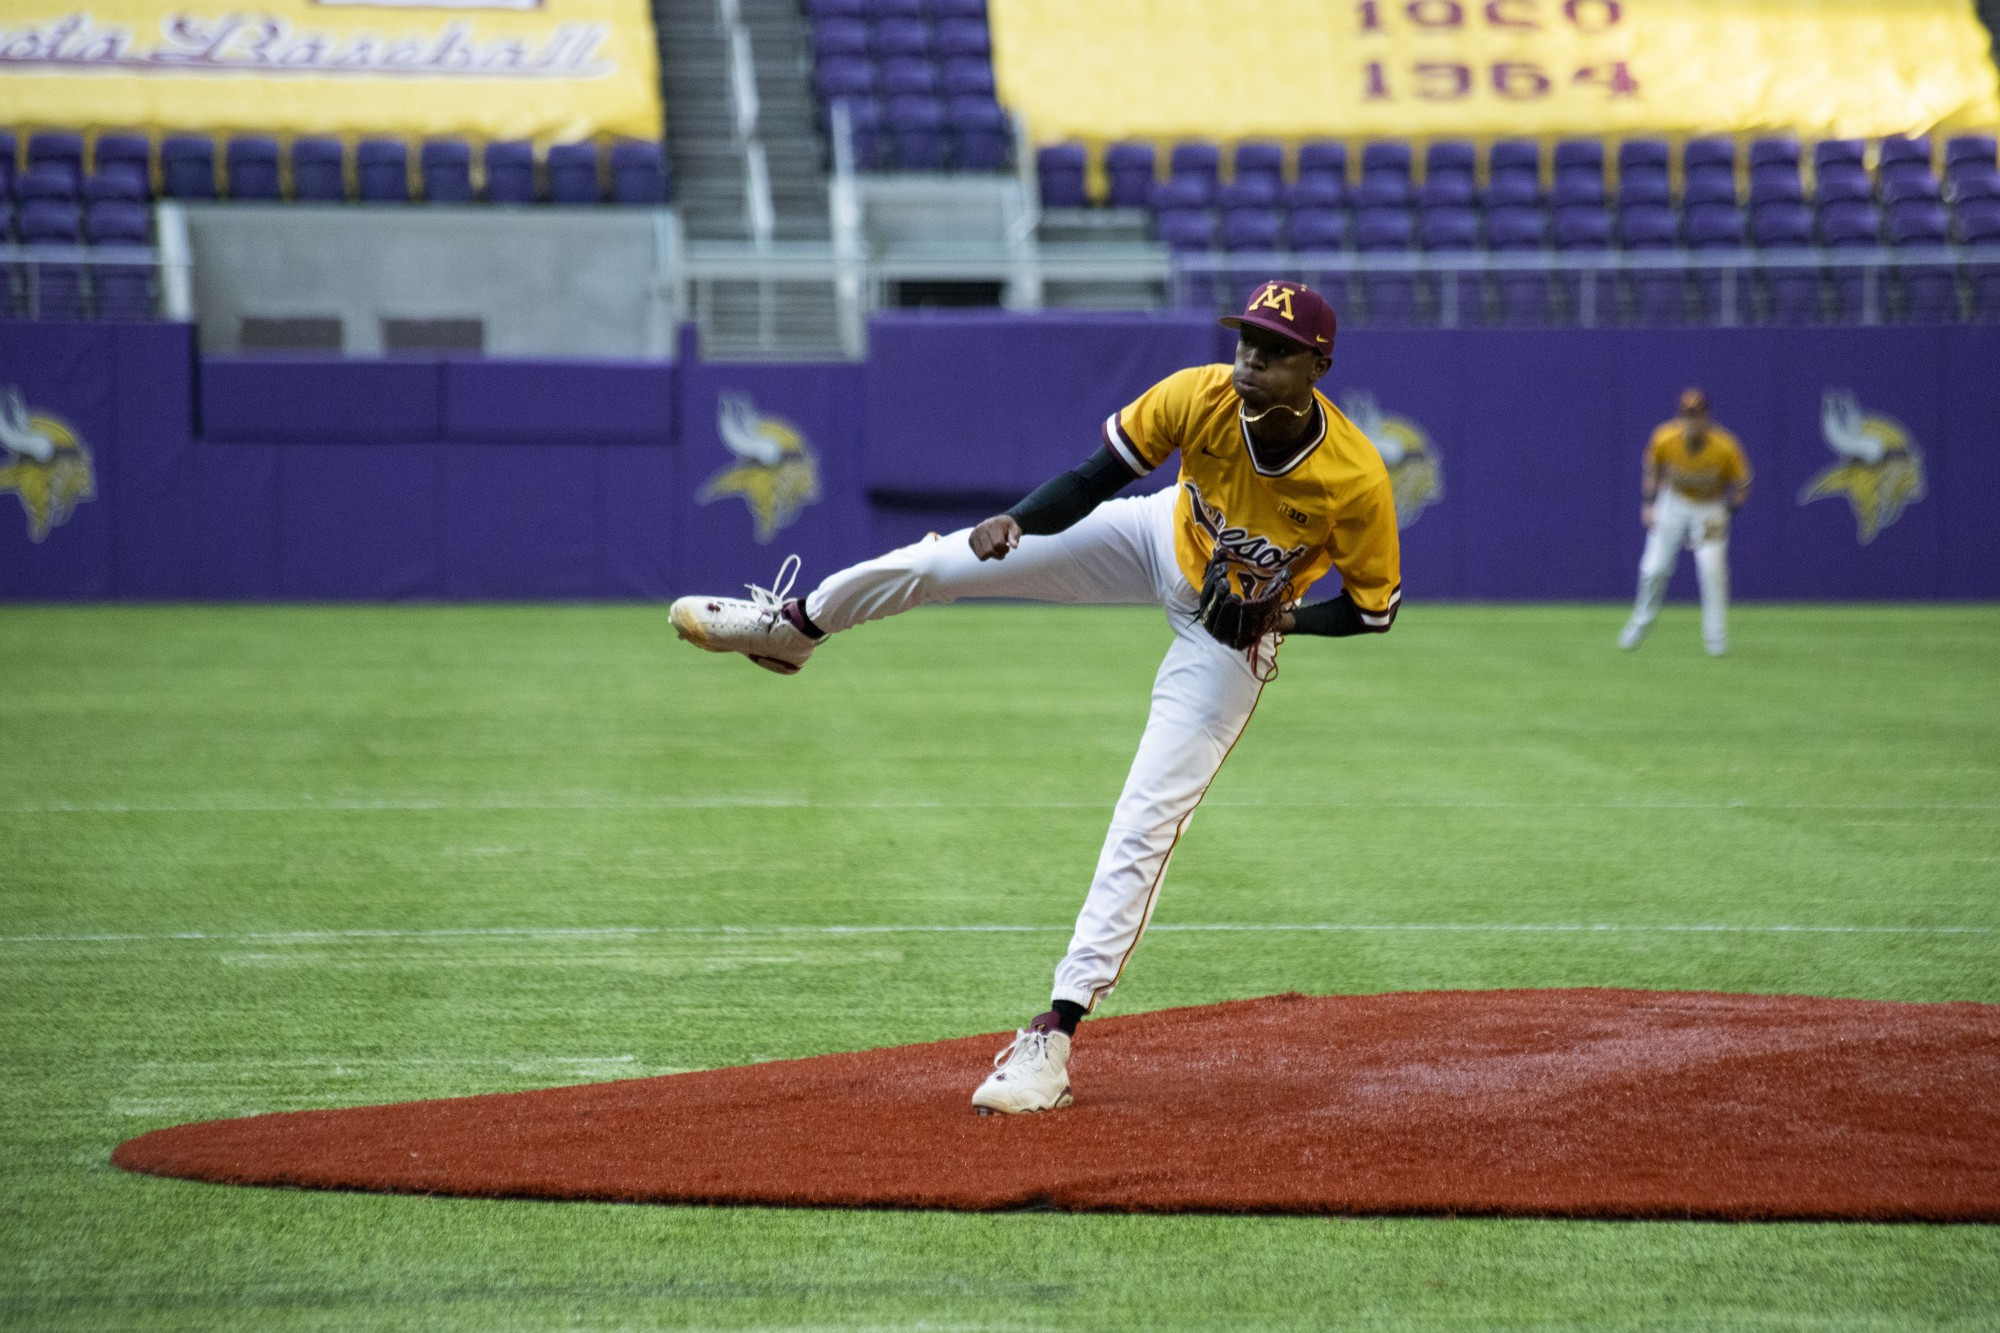 Pitcher J.P. Massey pitches the ball during the Gophers' 7-6 win against Texas Christian University at U.S. Bank Stadium on Saturday, Feb. 23.